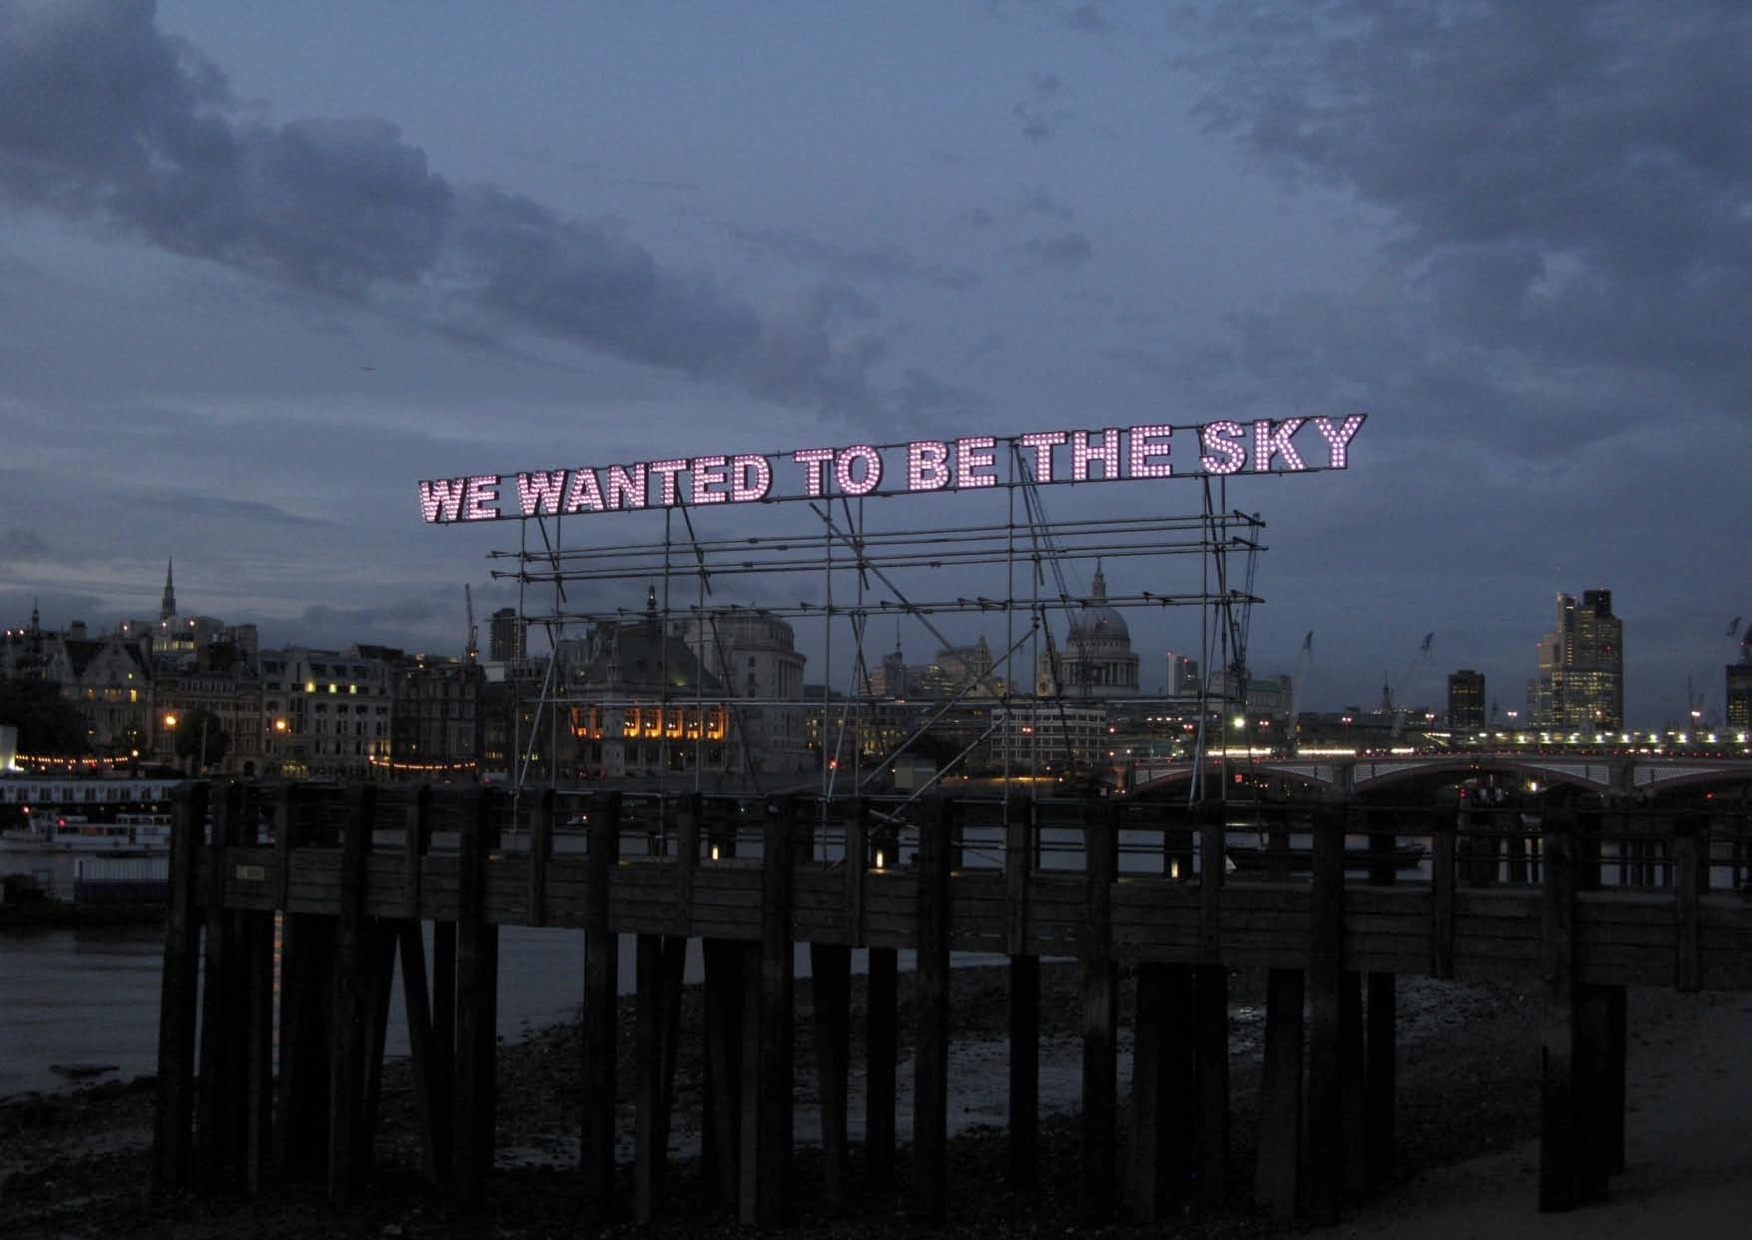 Tim Etchells, We Wanted, 2011. 3D steel letters, LEDs. 1,500 x 90 x 25 cm. Edition of 3 (+1 AP).